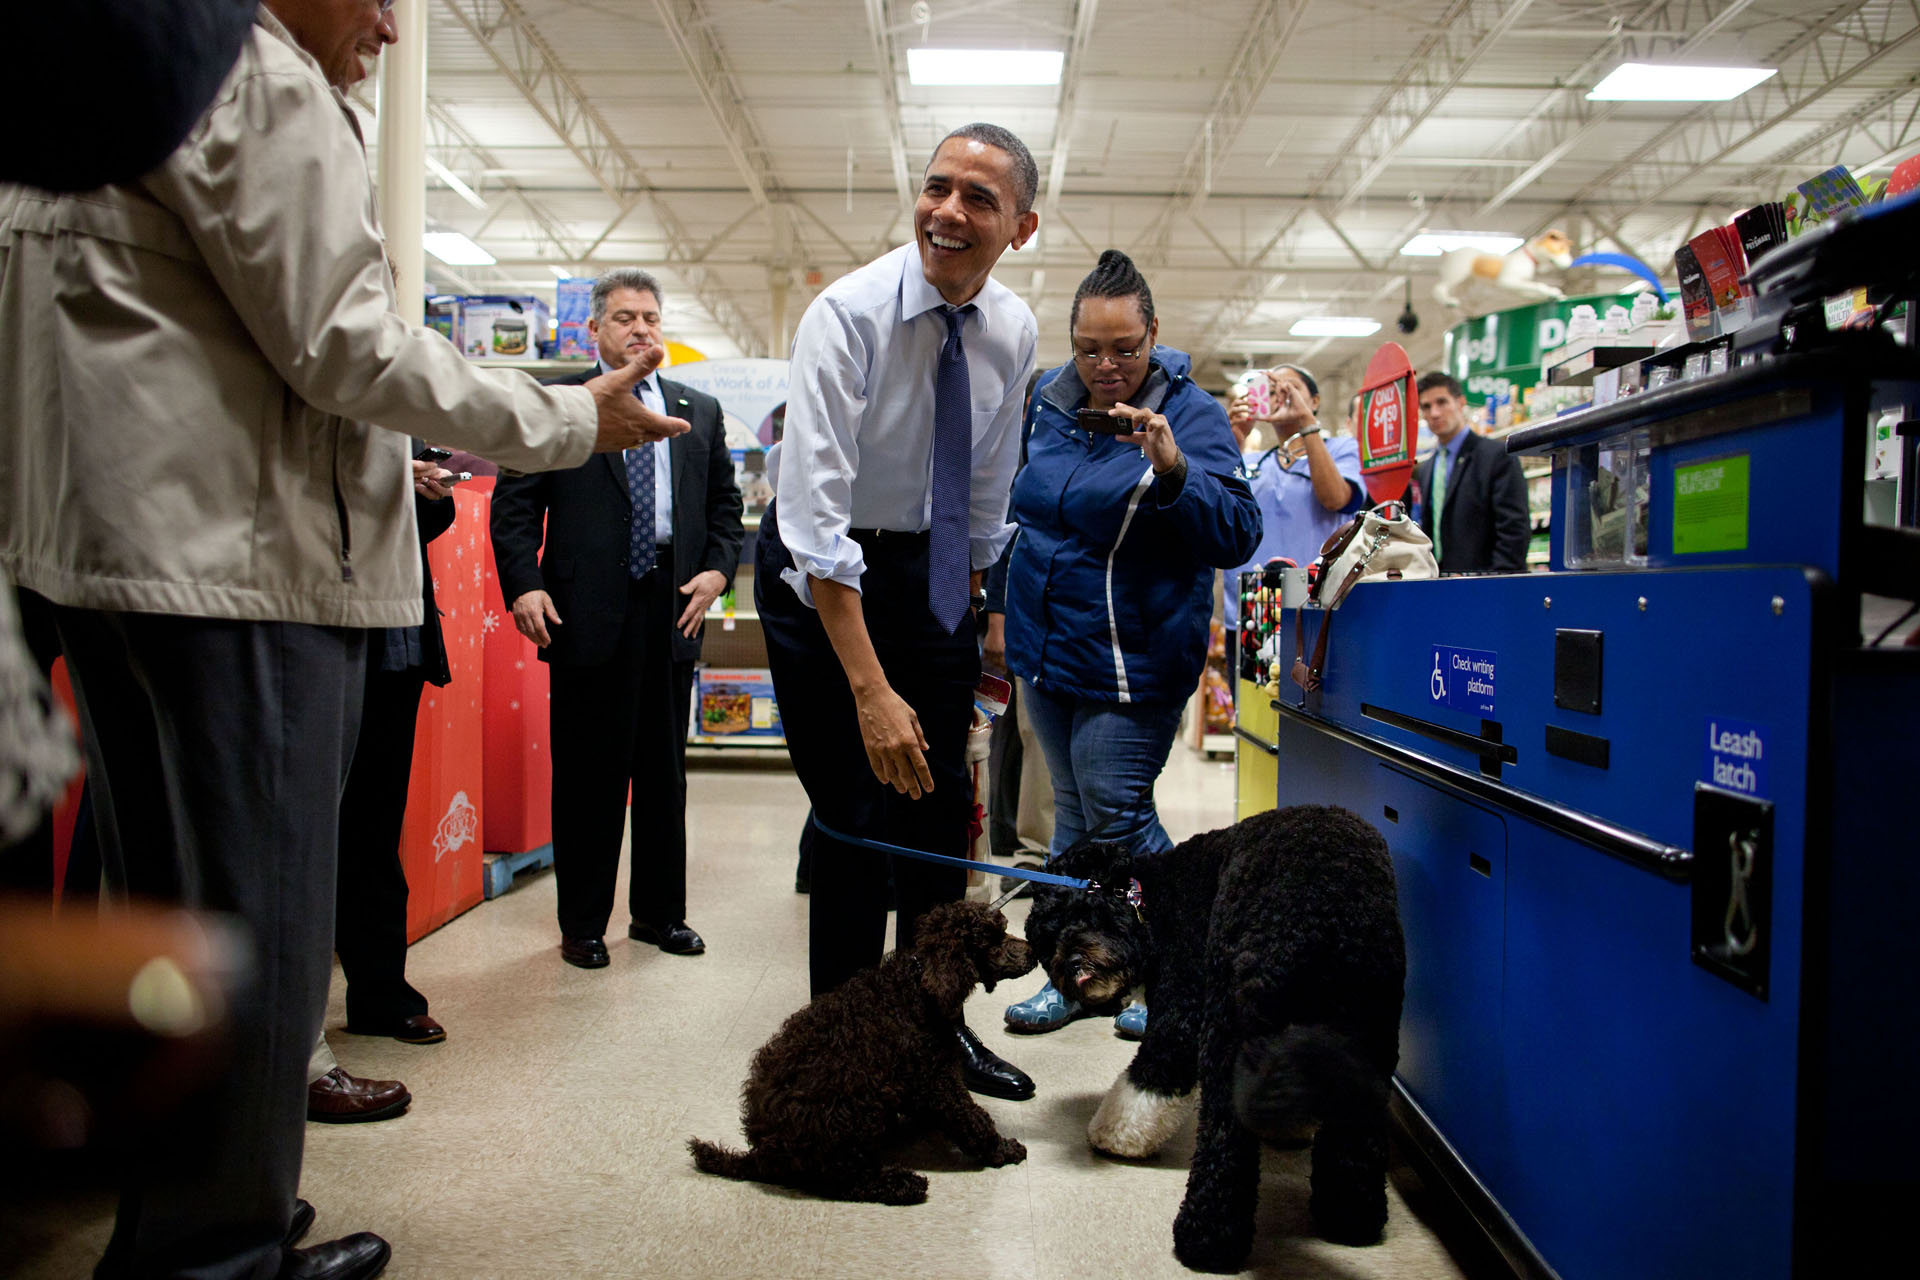 President Obama and Bo go shopping